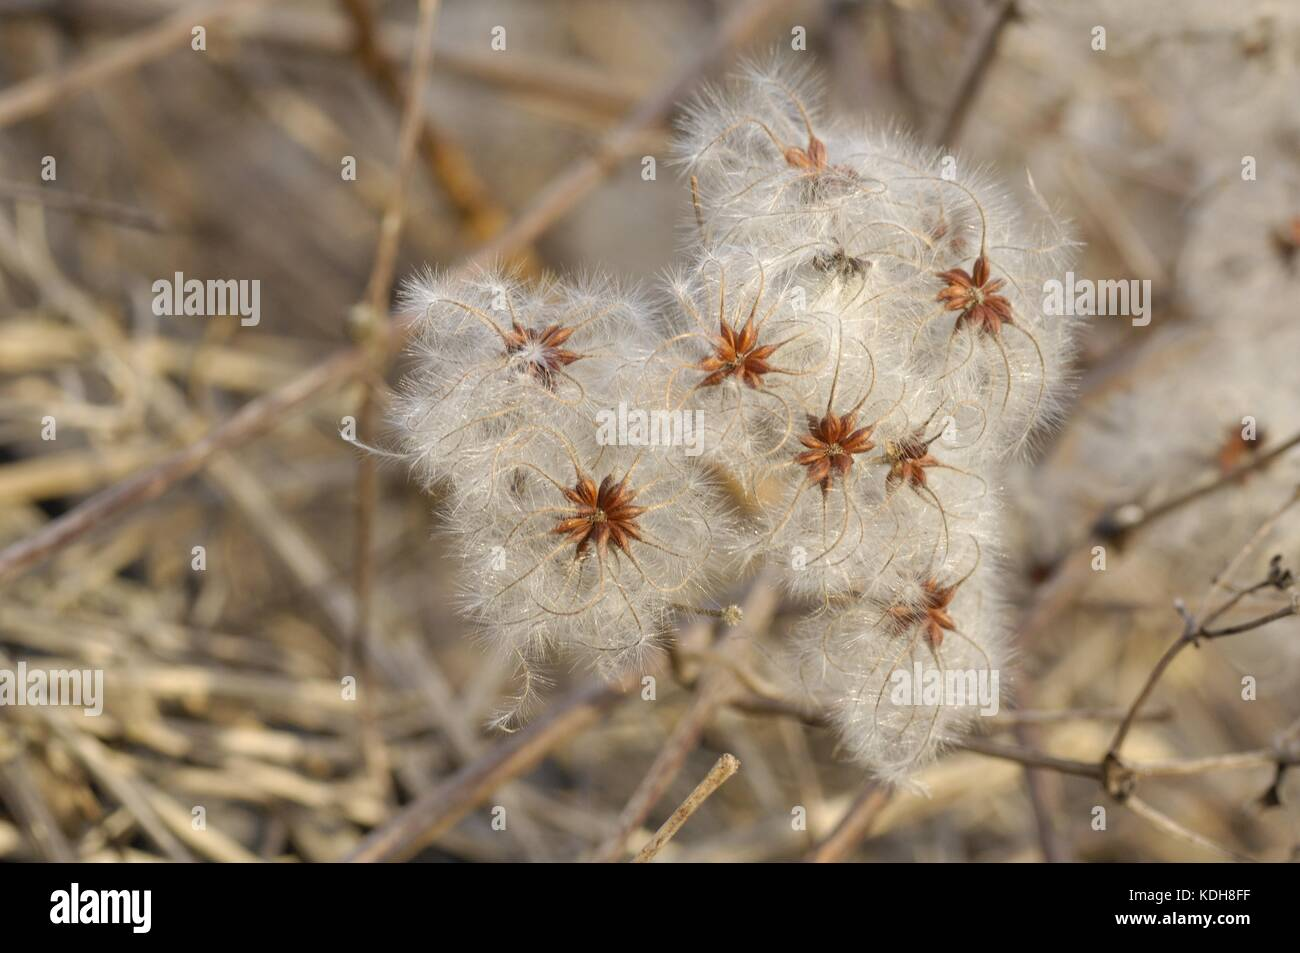 Old Man's Beard - Traveler's Joy (Clematis vitalba) flower in seeds in winter - Stock Image